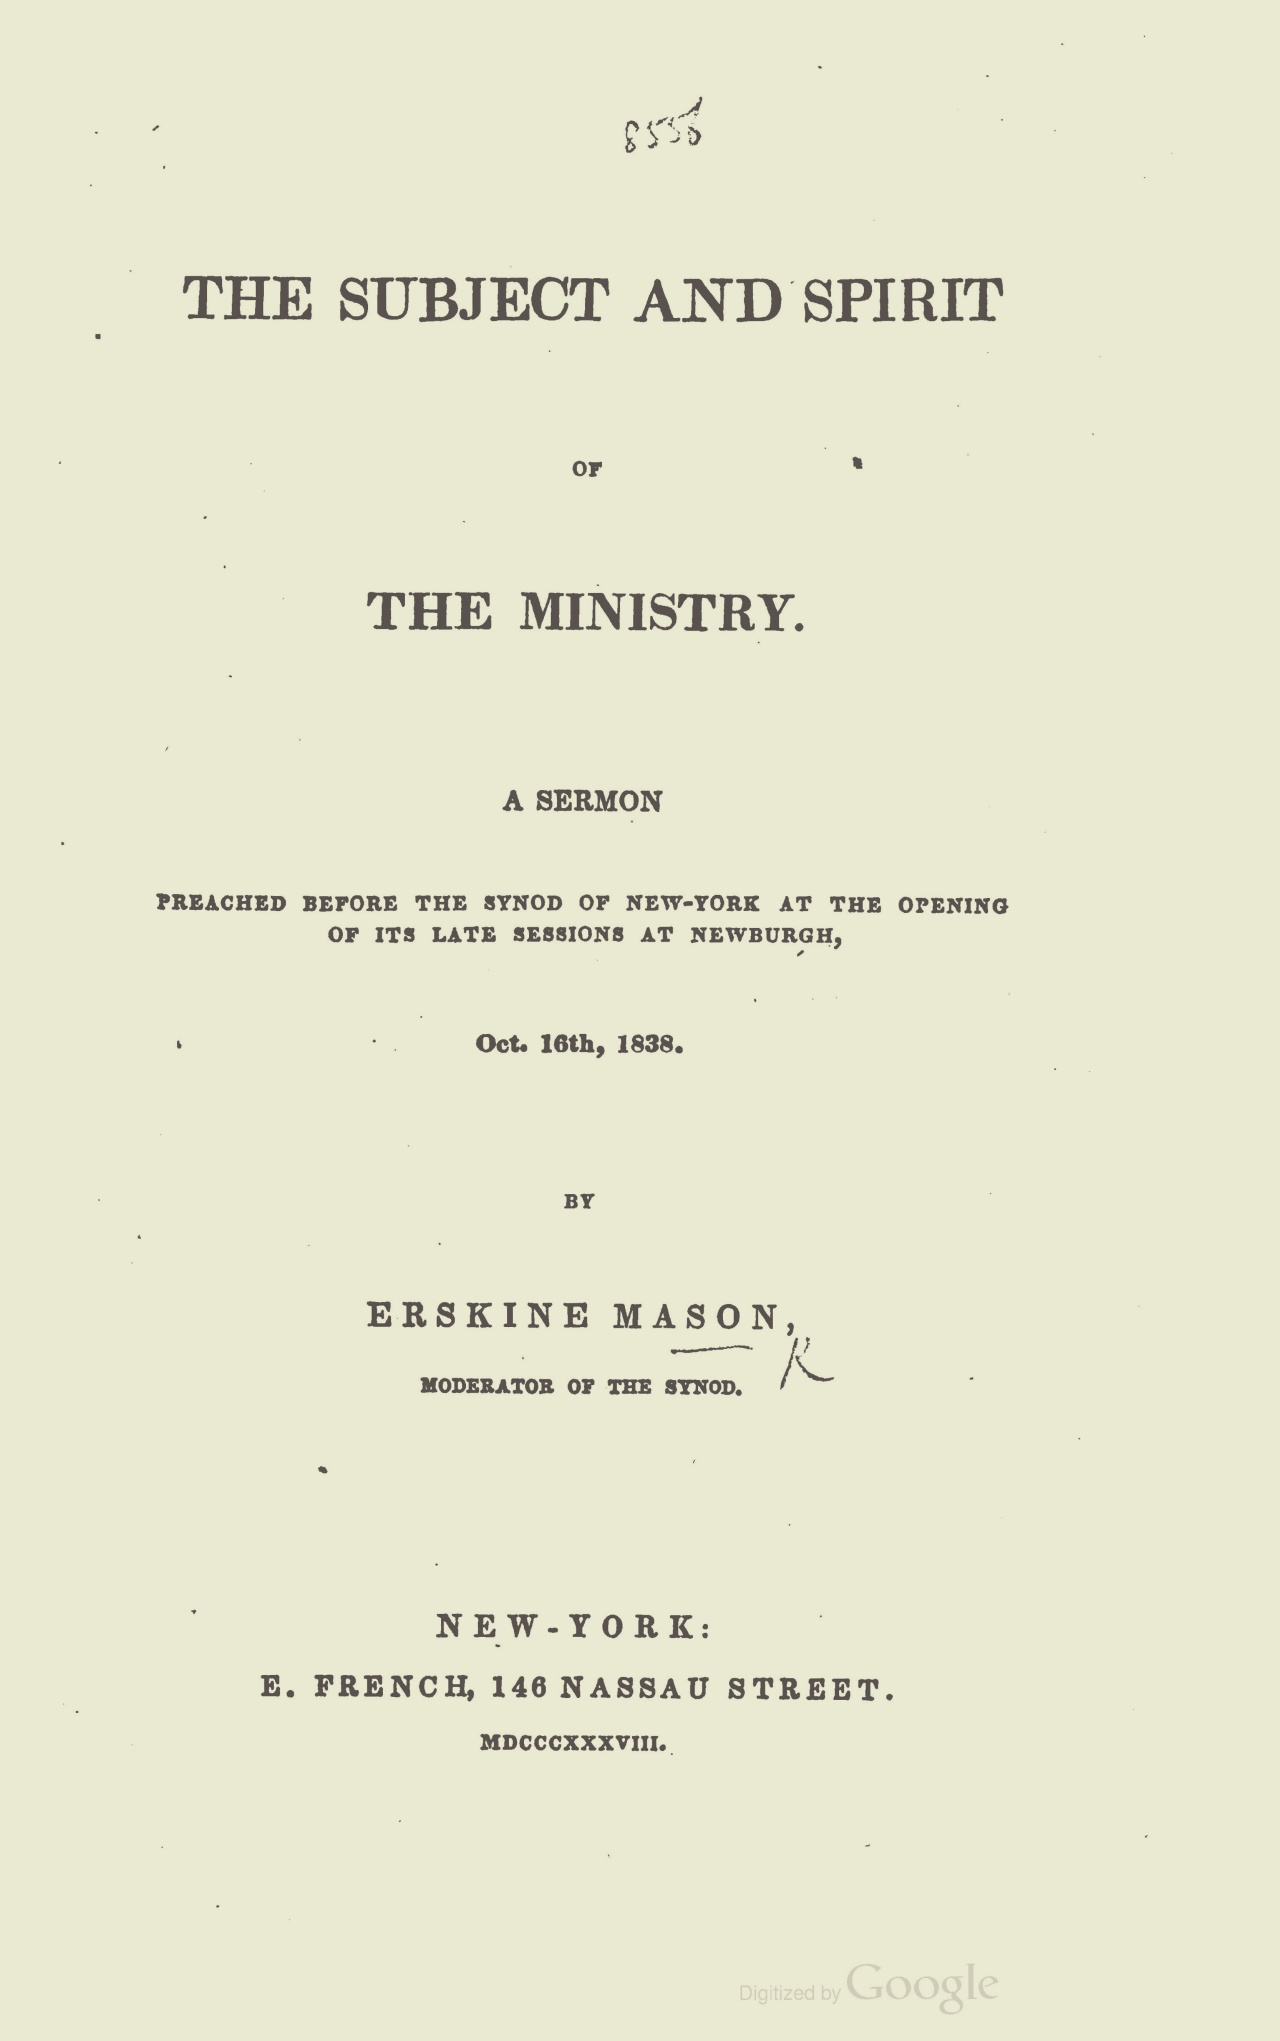 Mason, Sr., Erskine, The Subject and Spirit of the Ministry A Sermon Title Page.jpg